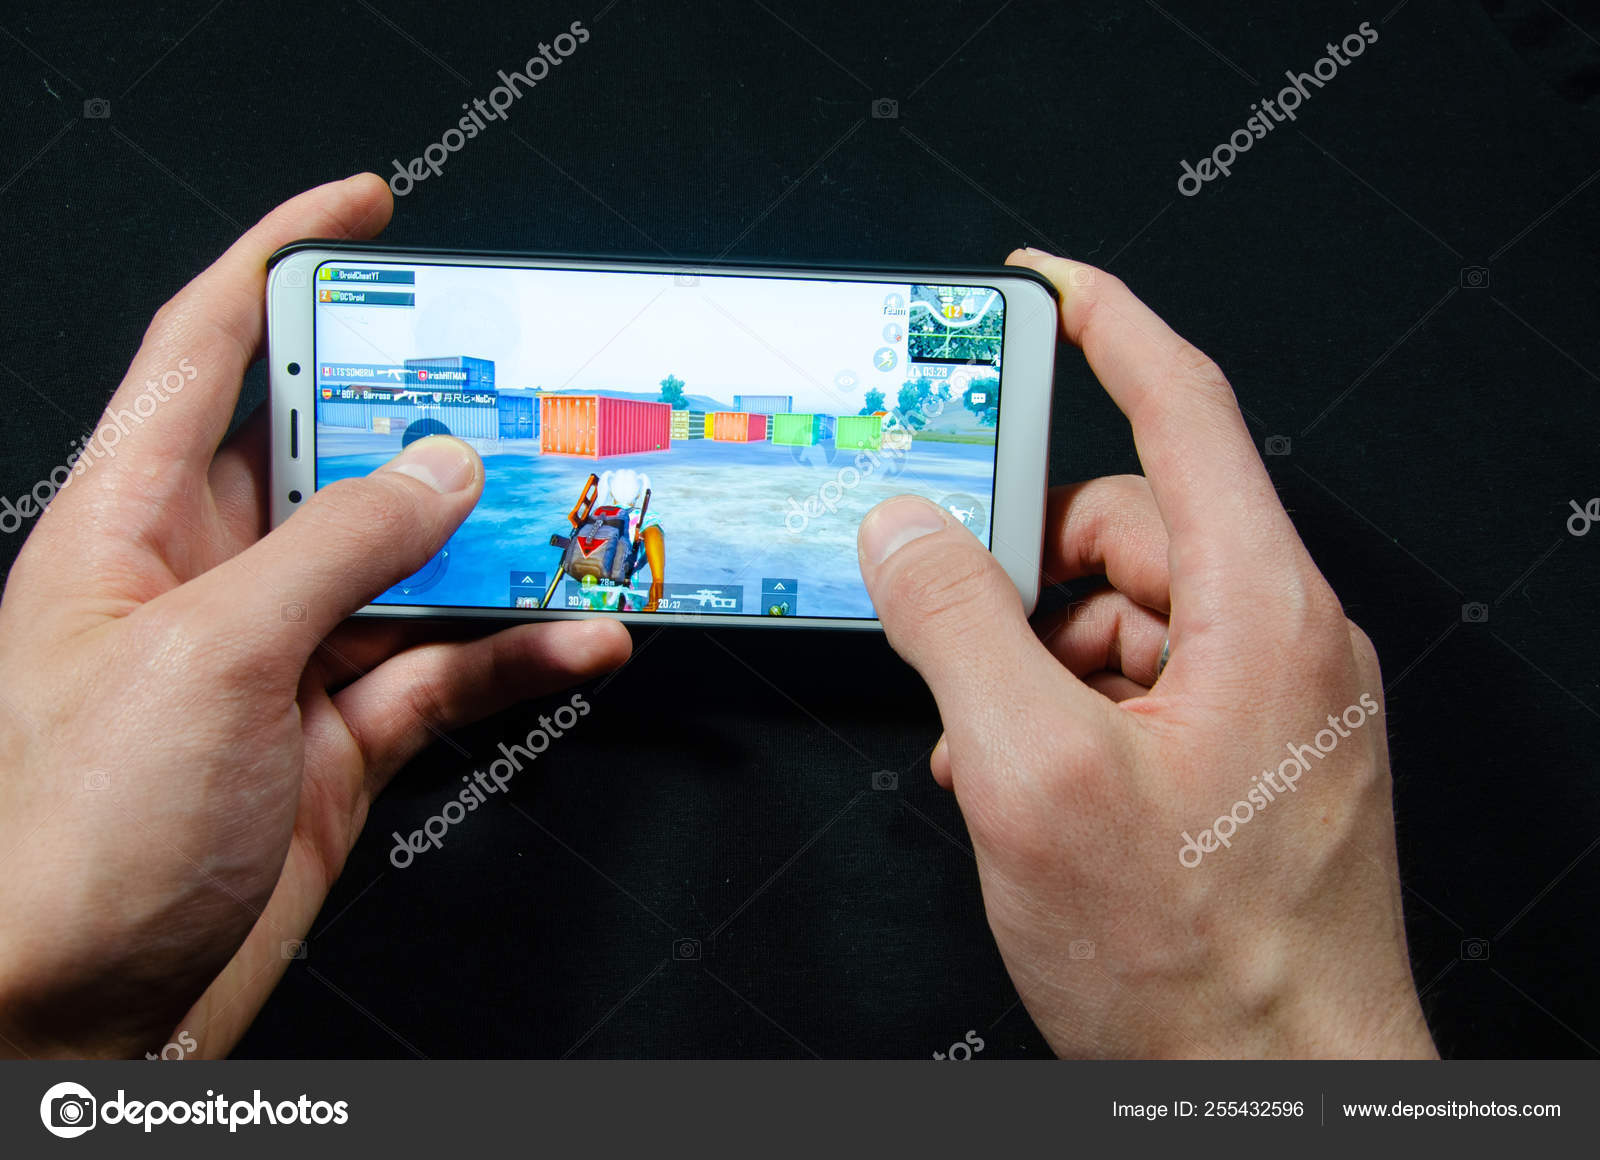 Hands Holding A Smartphone On Which The Game Gameplay Gameplay Pubg G Mobile Playerunknown S Battlegrounds Stock Editorial Photo C Arthur Shevtsov 255432596